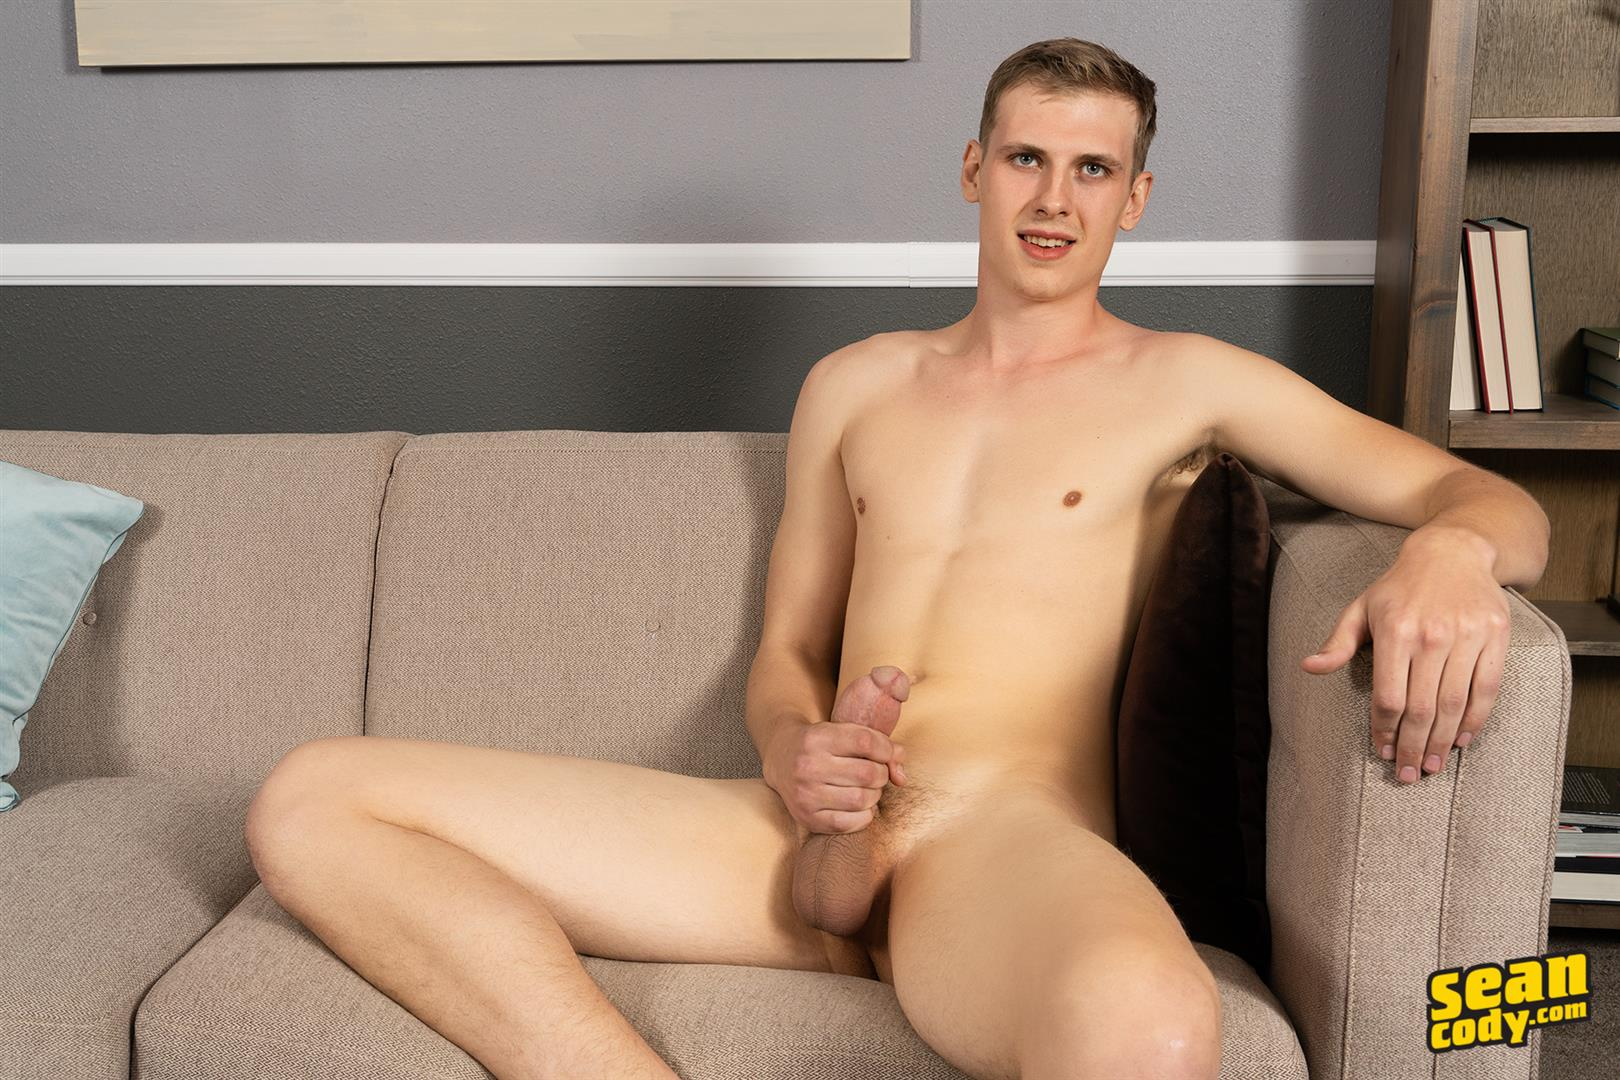 Sean-Cody-Mick-Big-Dick-Bisexual-Blue-Collar-Guy-Masturbating-07 Check Out The Cock On This Young Bisexual Blue Collar Stud